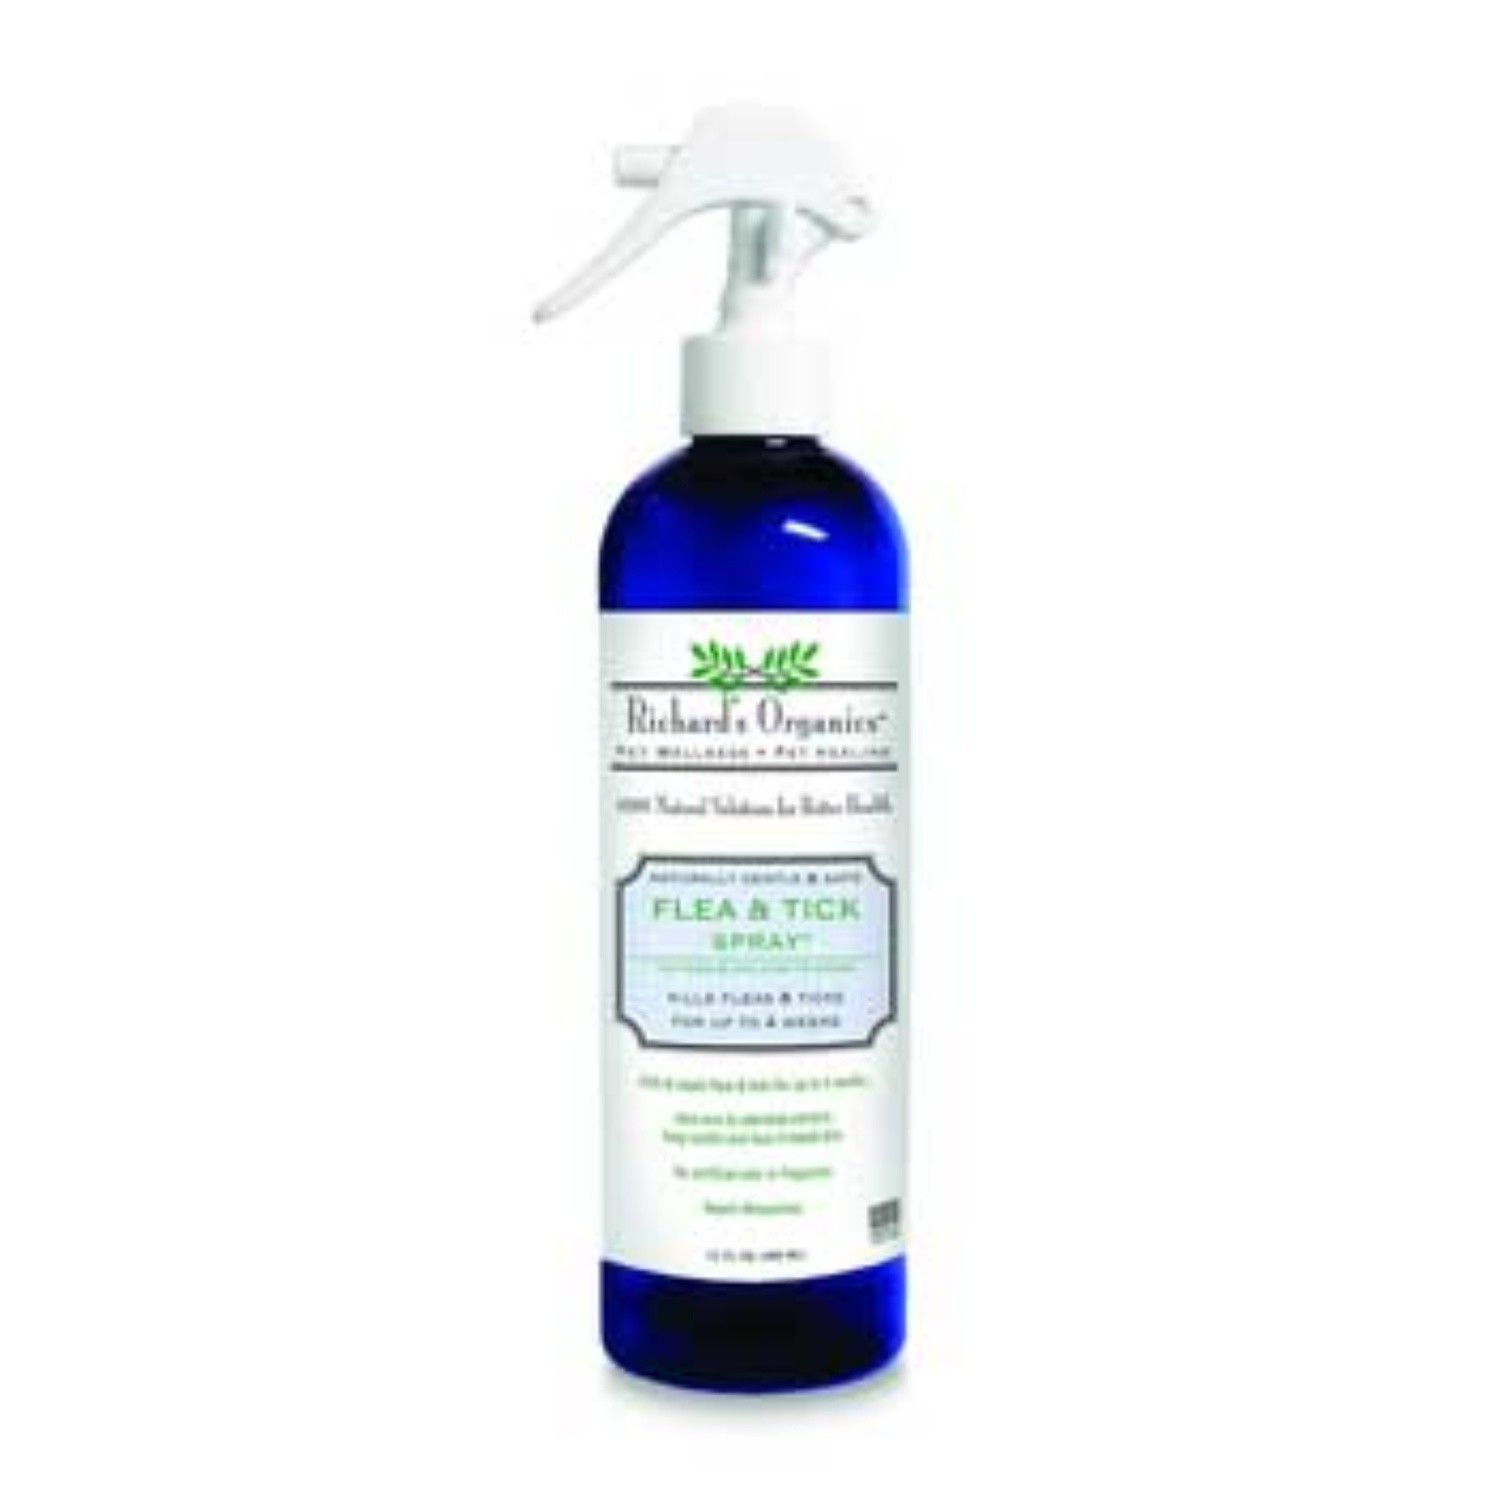 LOCATION ? SynergyLabs Richard's Organics Natural Flea & Tick Spray, 12oz